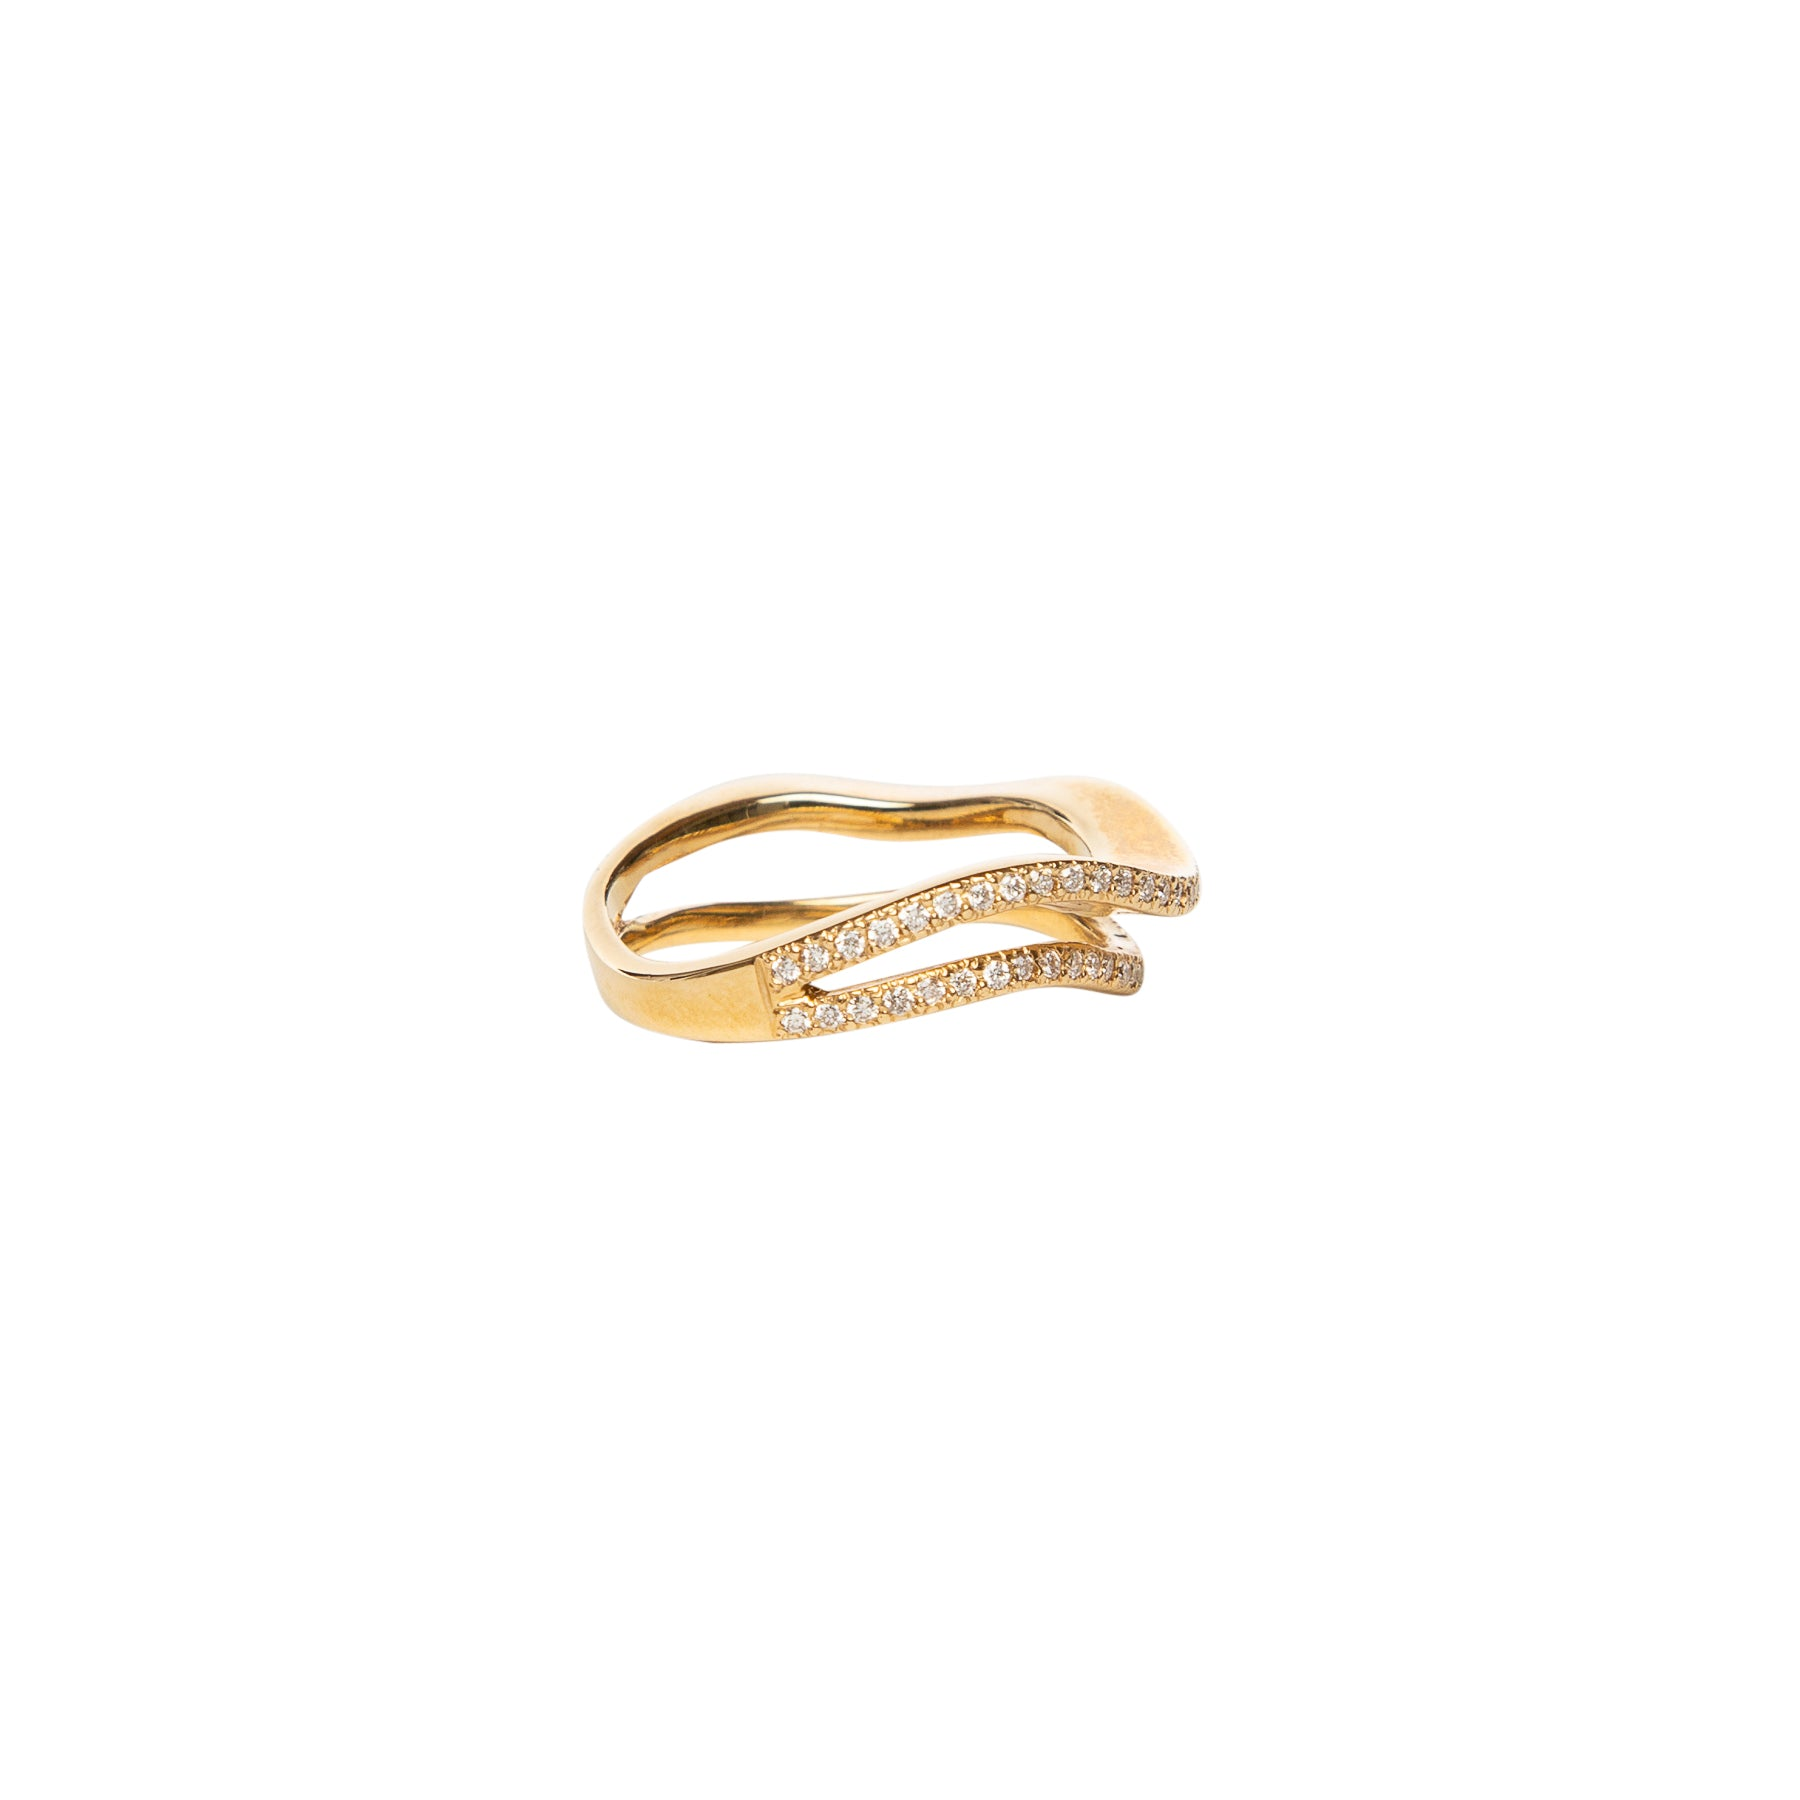 MAUD JEWELRY | 18K .49CT GOLD IMPERFECT STACKING RING